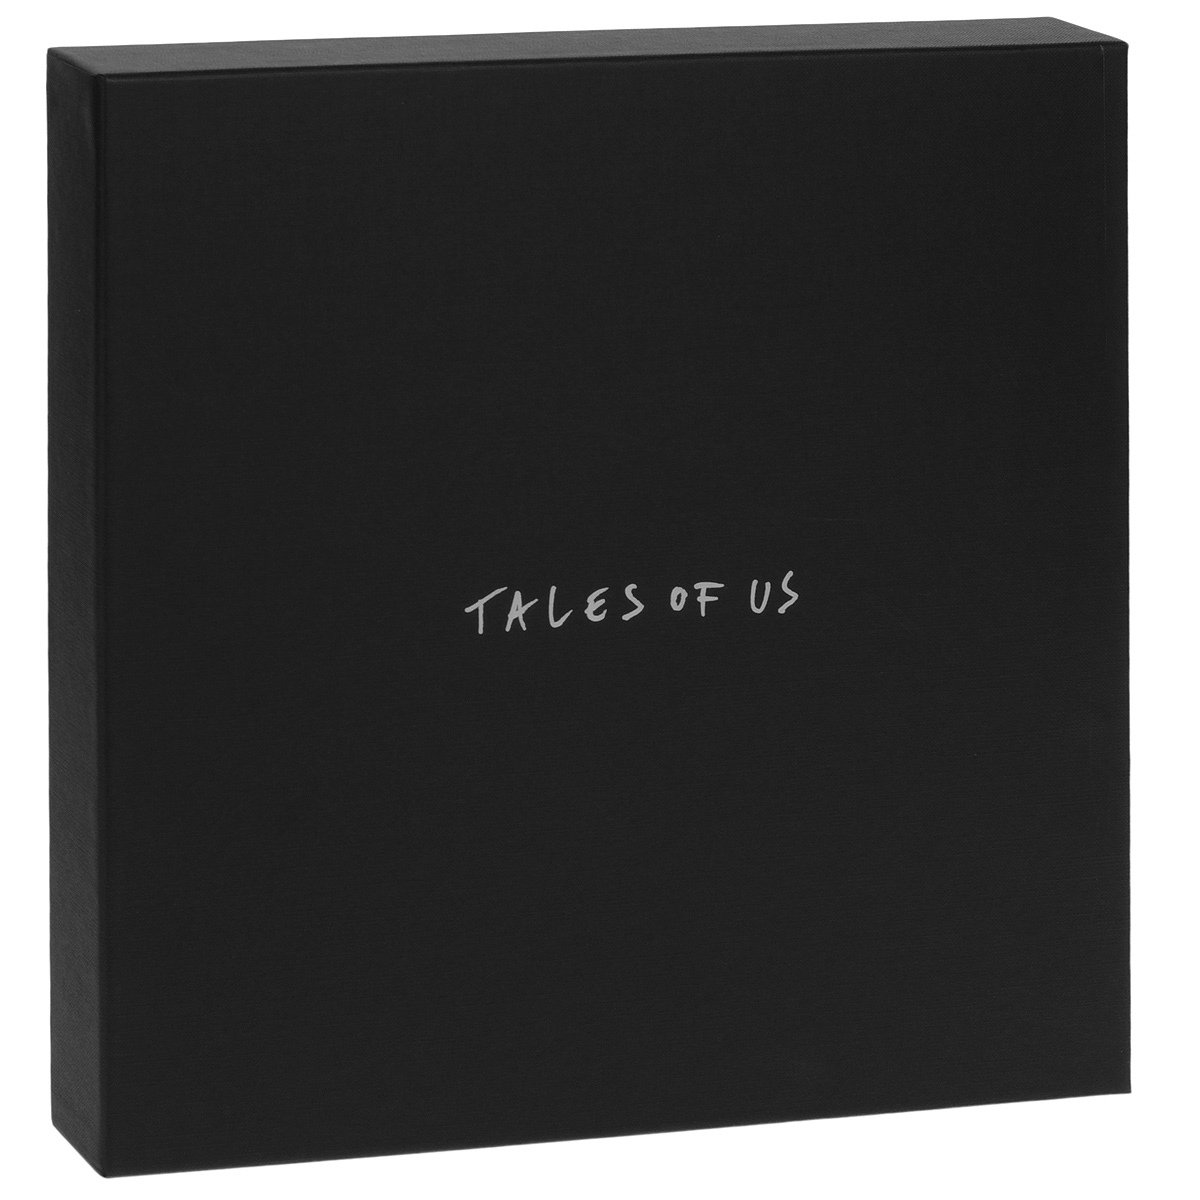 Goldfrapp Goldfrapp. Tales Of Us (2 CD + DVD + LP) сумка oboly obl047 2015 drew bag page 2